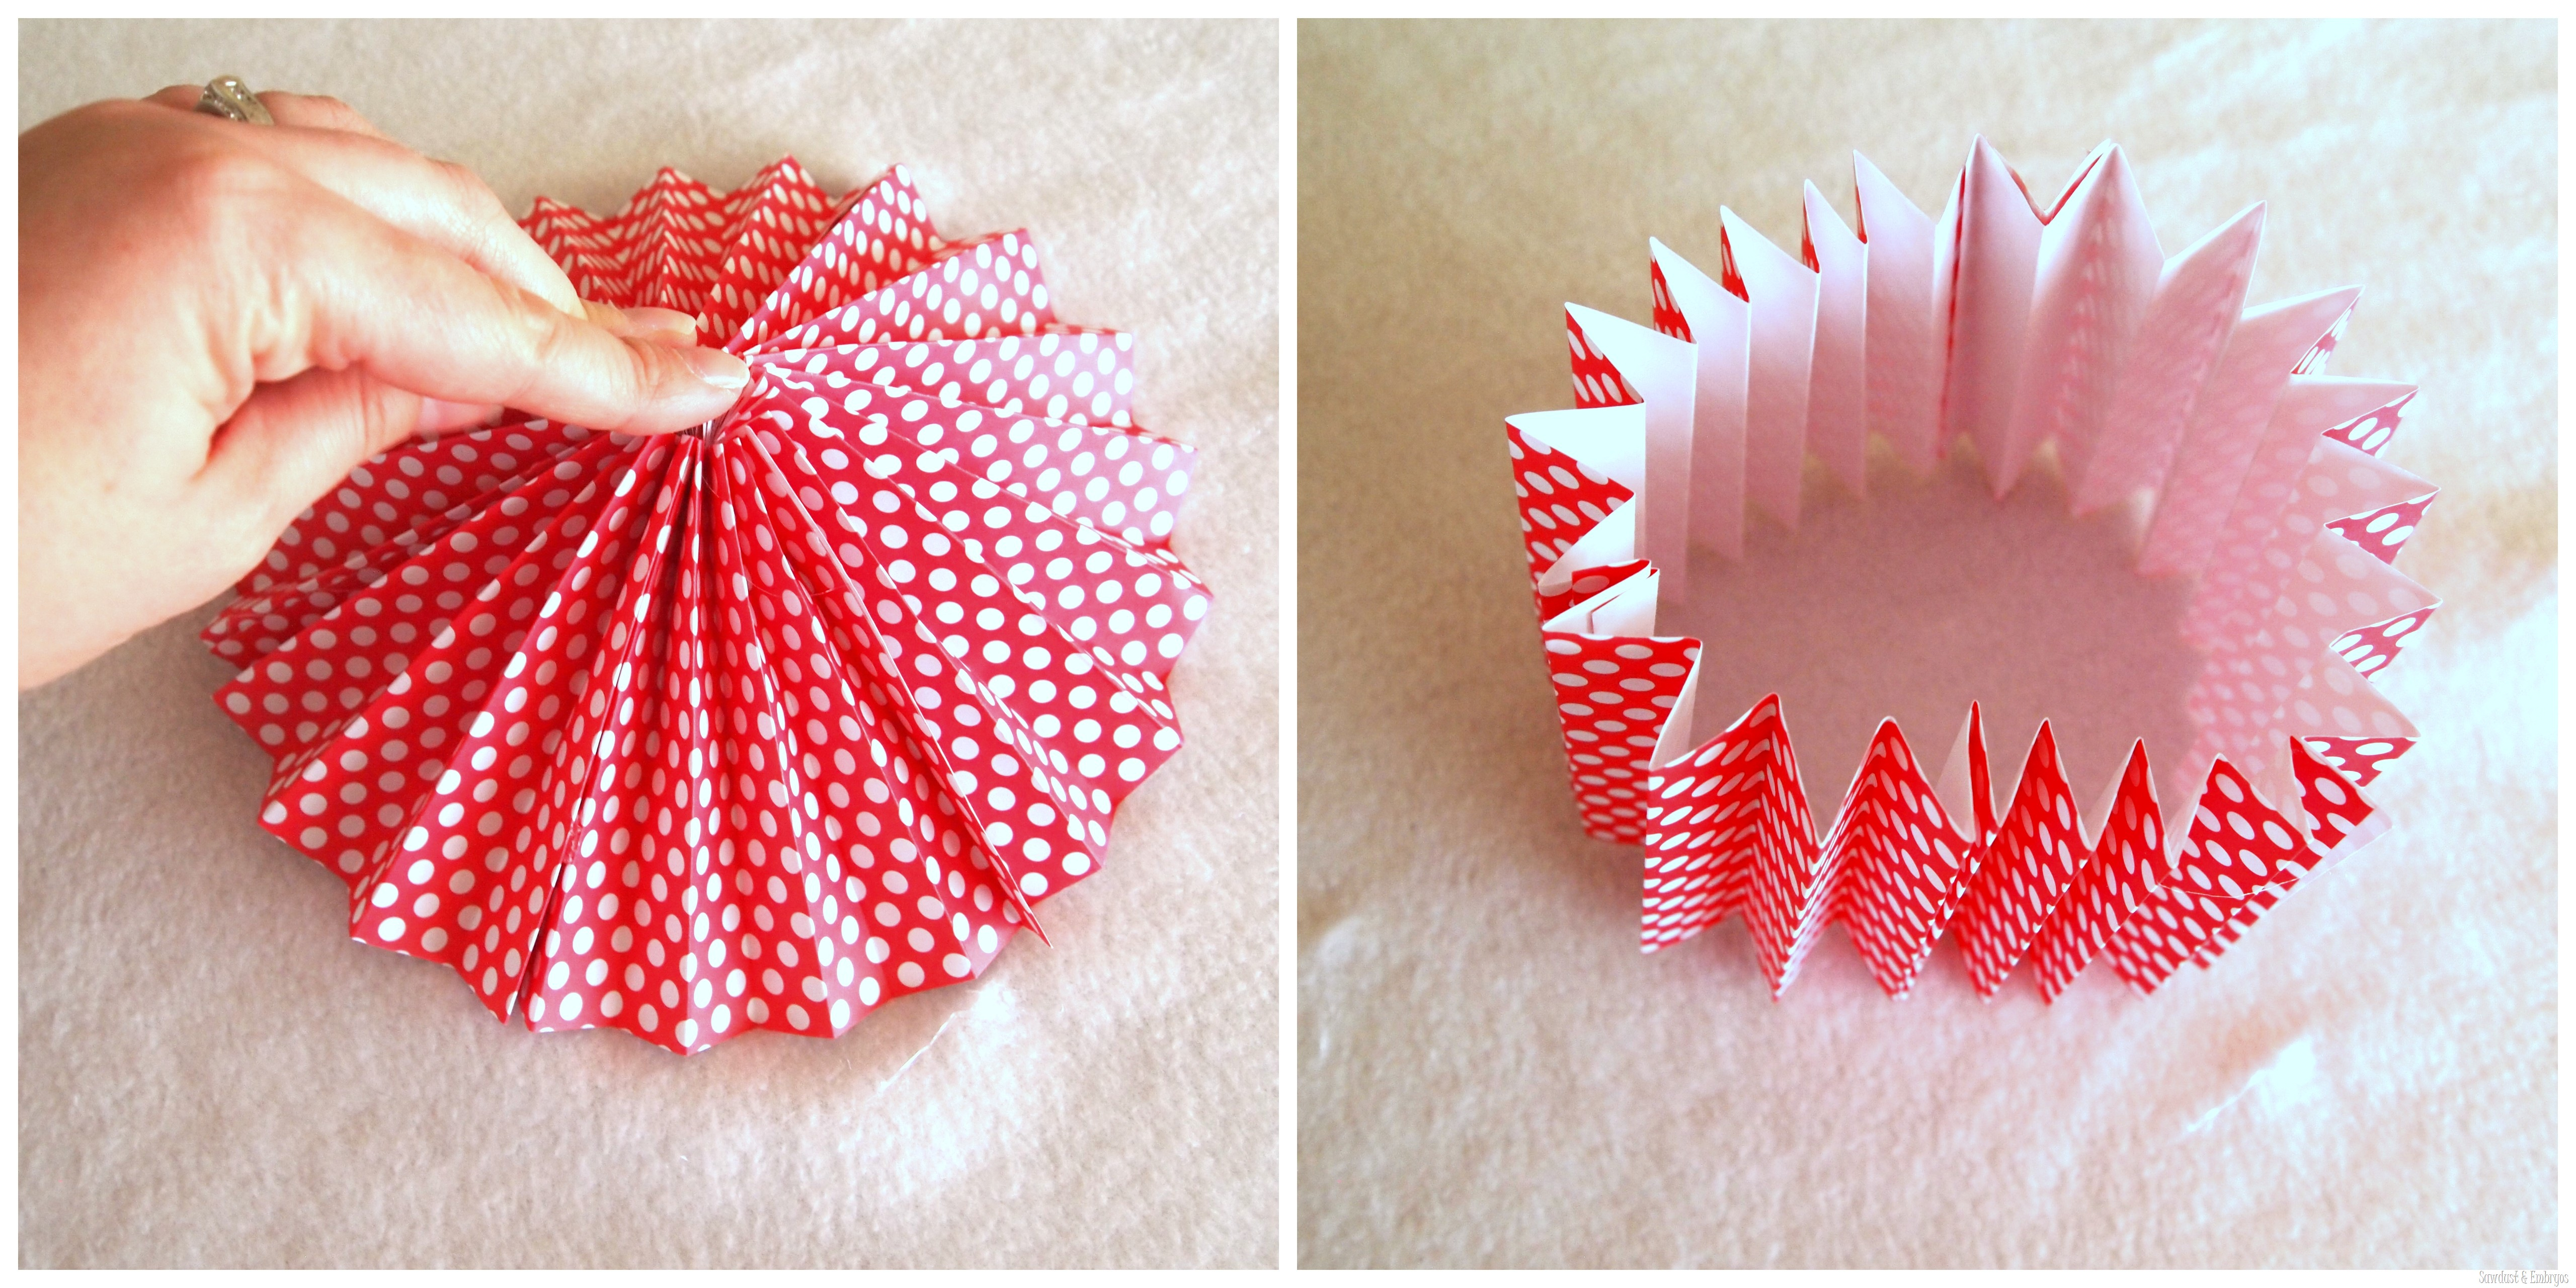 How to make scrapbook with construction paper - Make A Pinwheel Out Of Scrapbooking Paper Sawdust Embryos